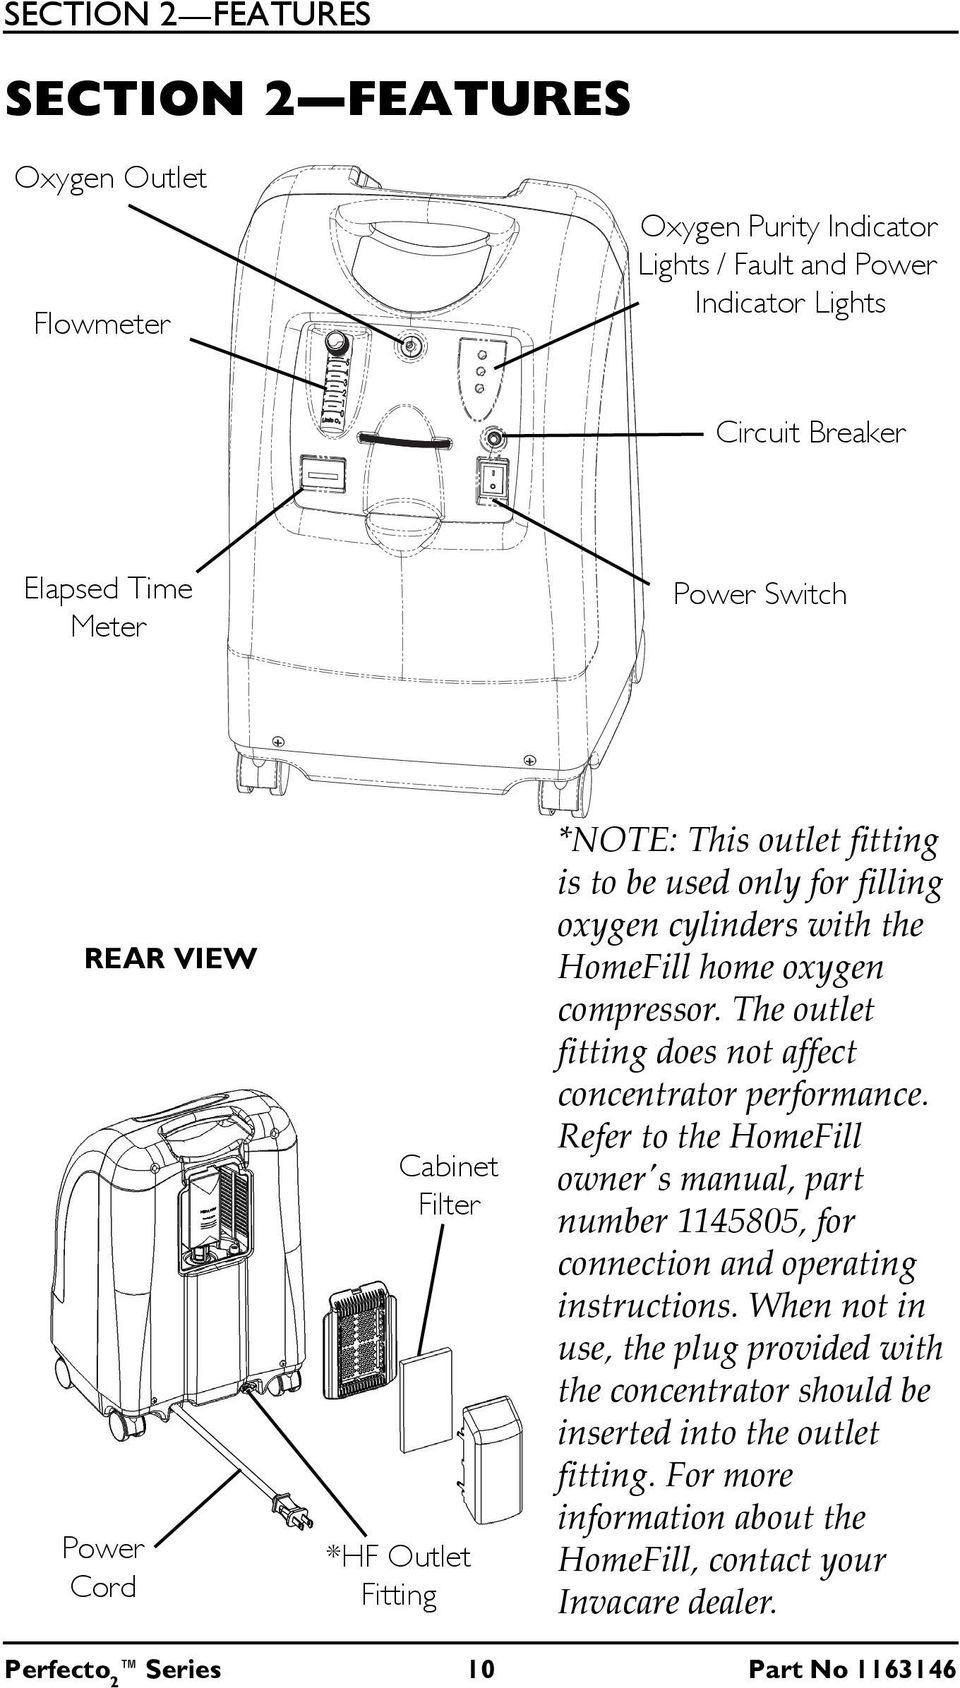 The outlet fitting does not affect concentrator performance. Refer to the HomeFill owner's manual, part number 1145805, for connection and operating instructions.